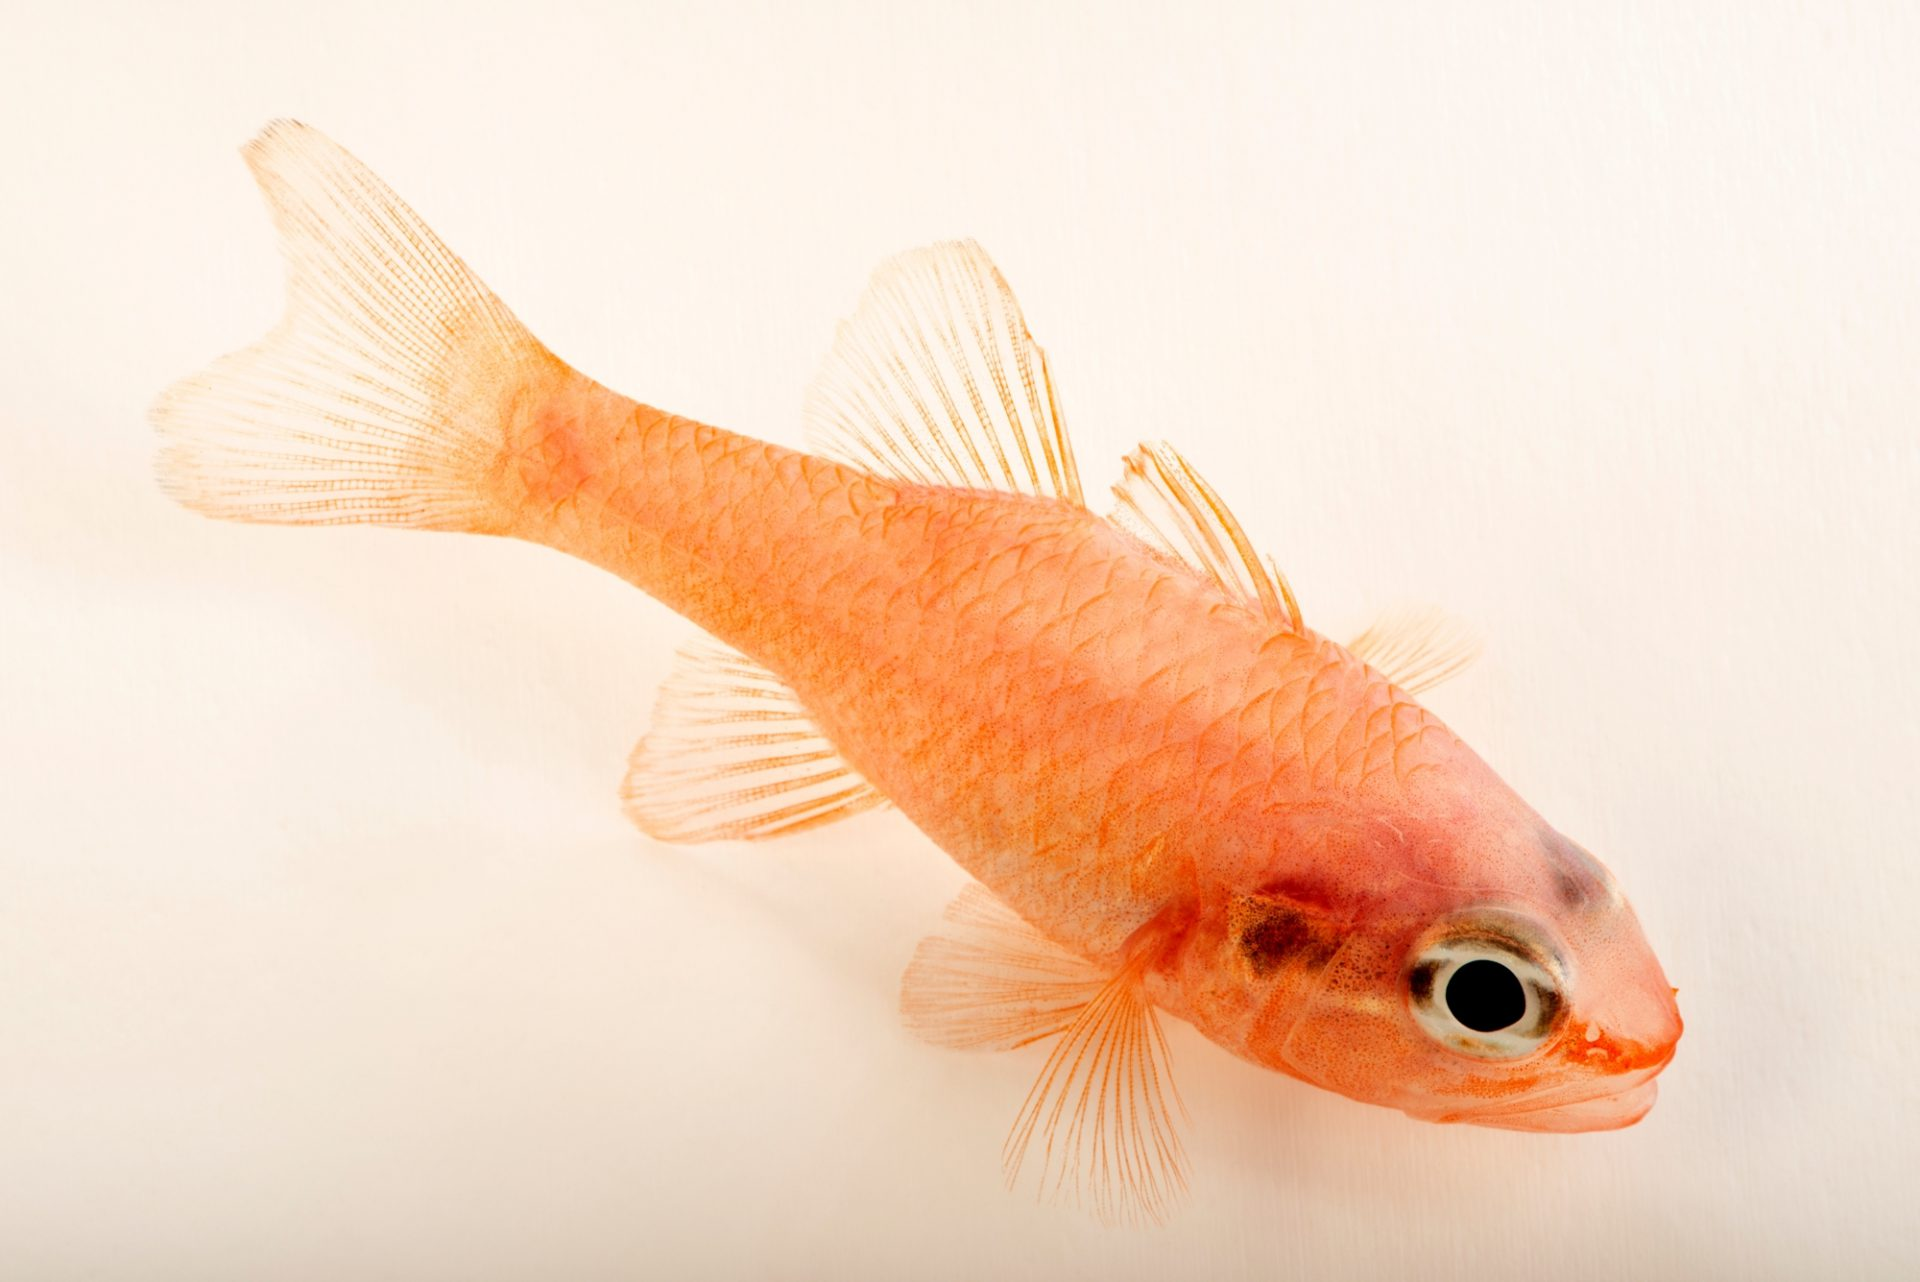 Photo: Flamefish (Apogon maculatus) at the Albuquerque BioPark Aquarium.